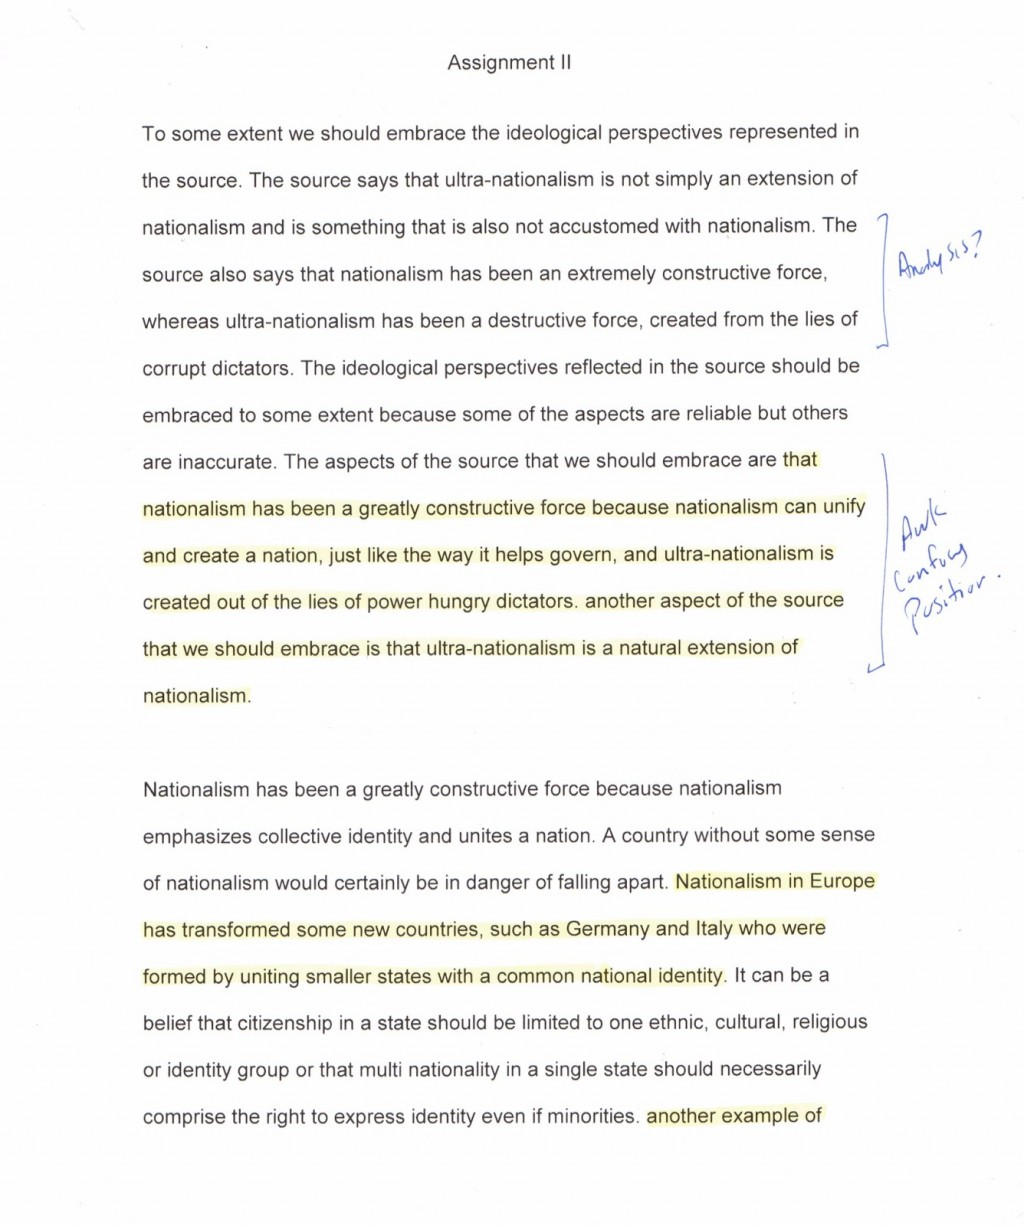 002 Assignment20ii20page201 Nationalism Essay Impressive Topics African Pdf Large